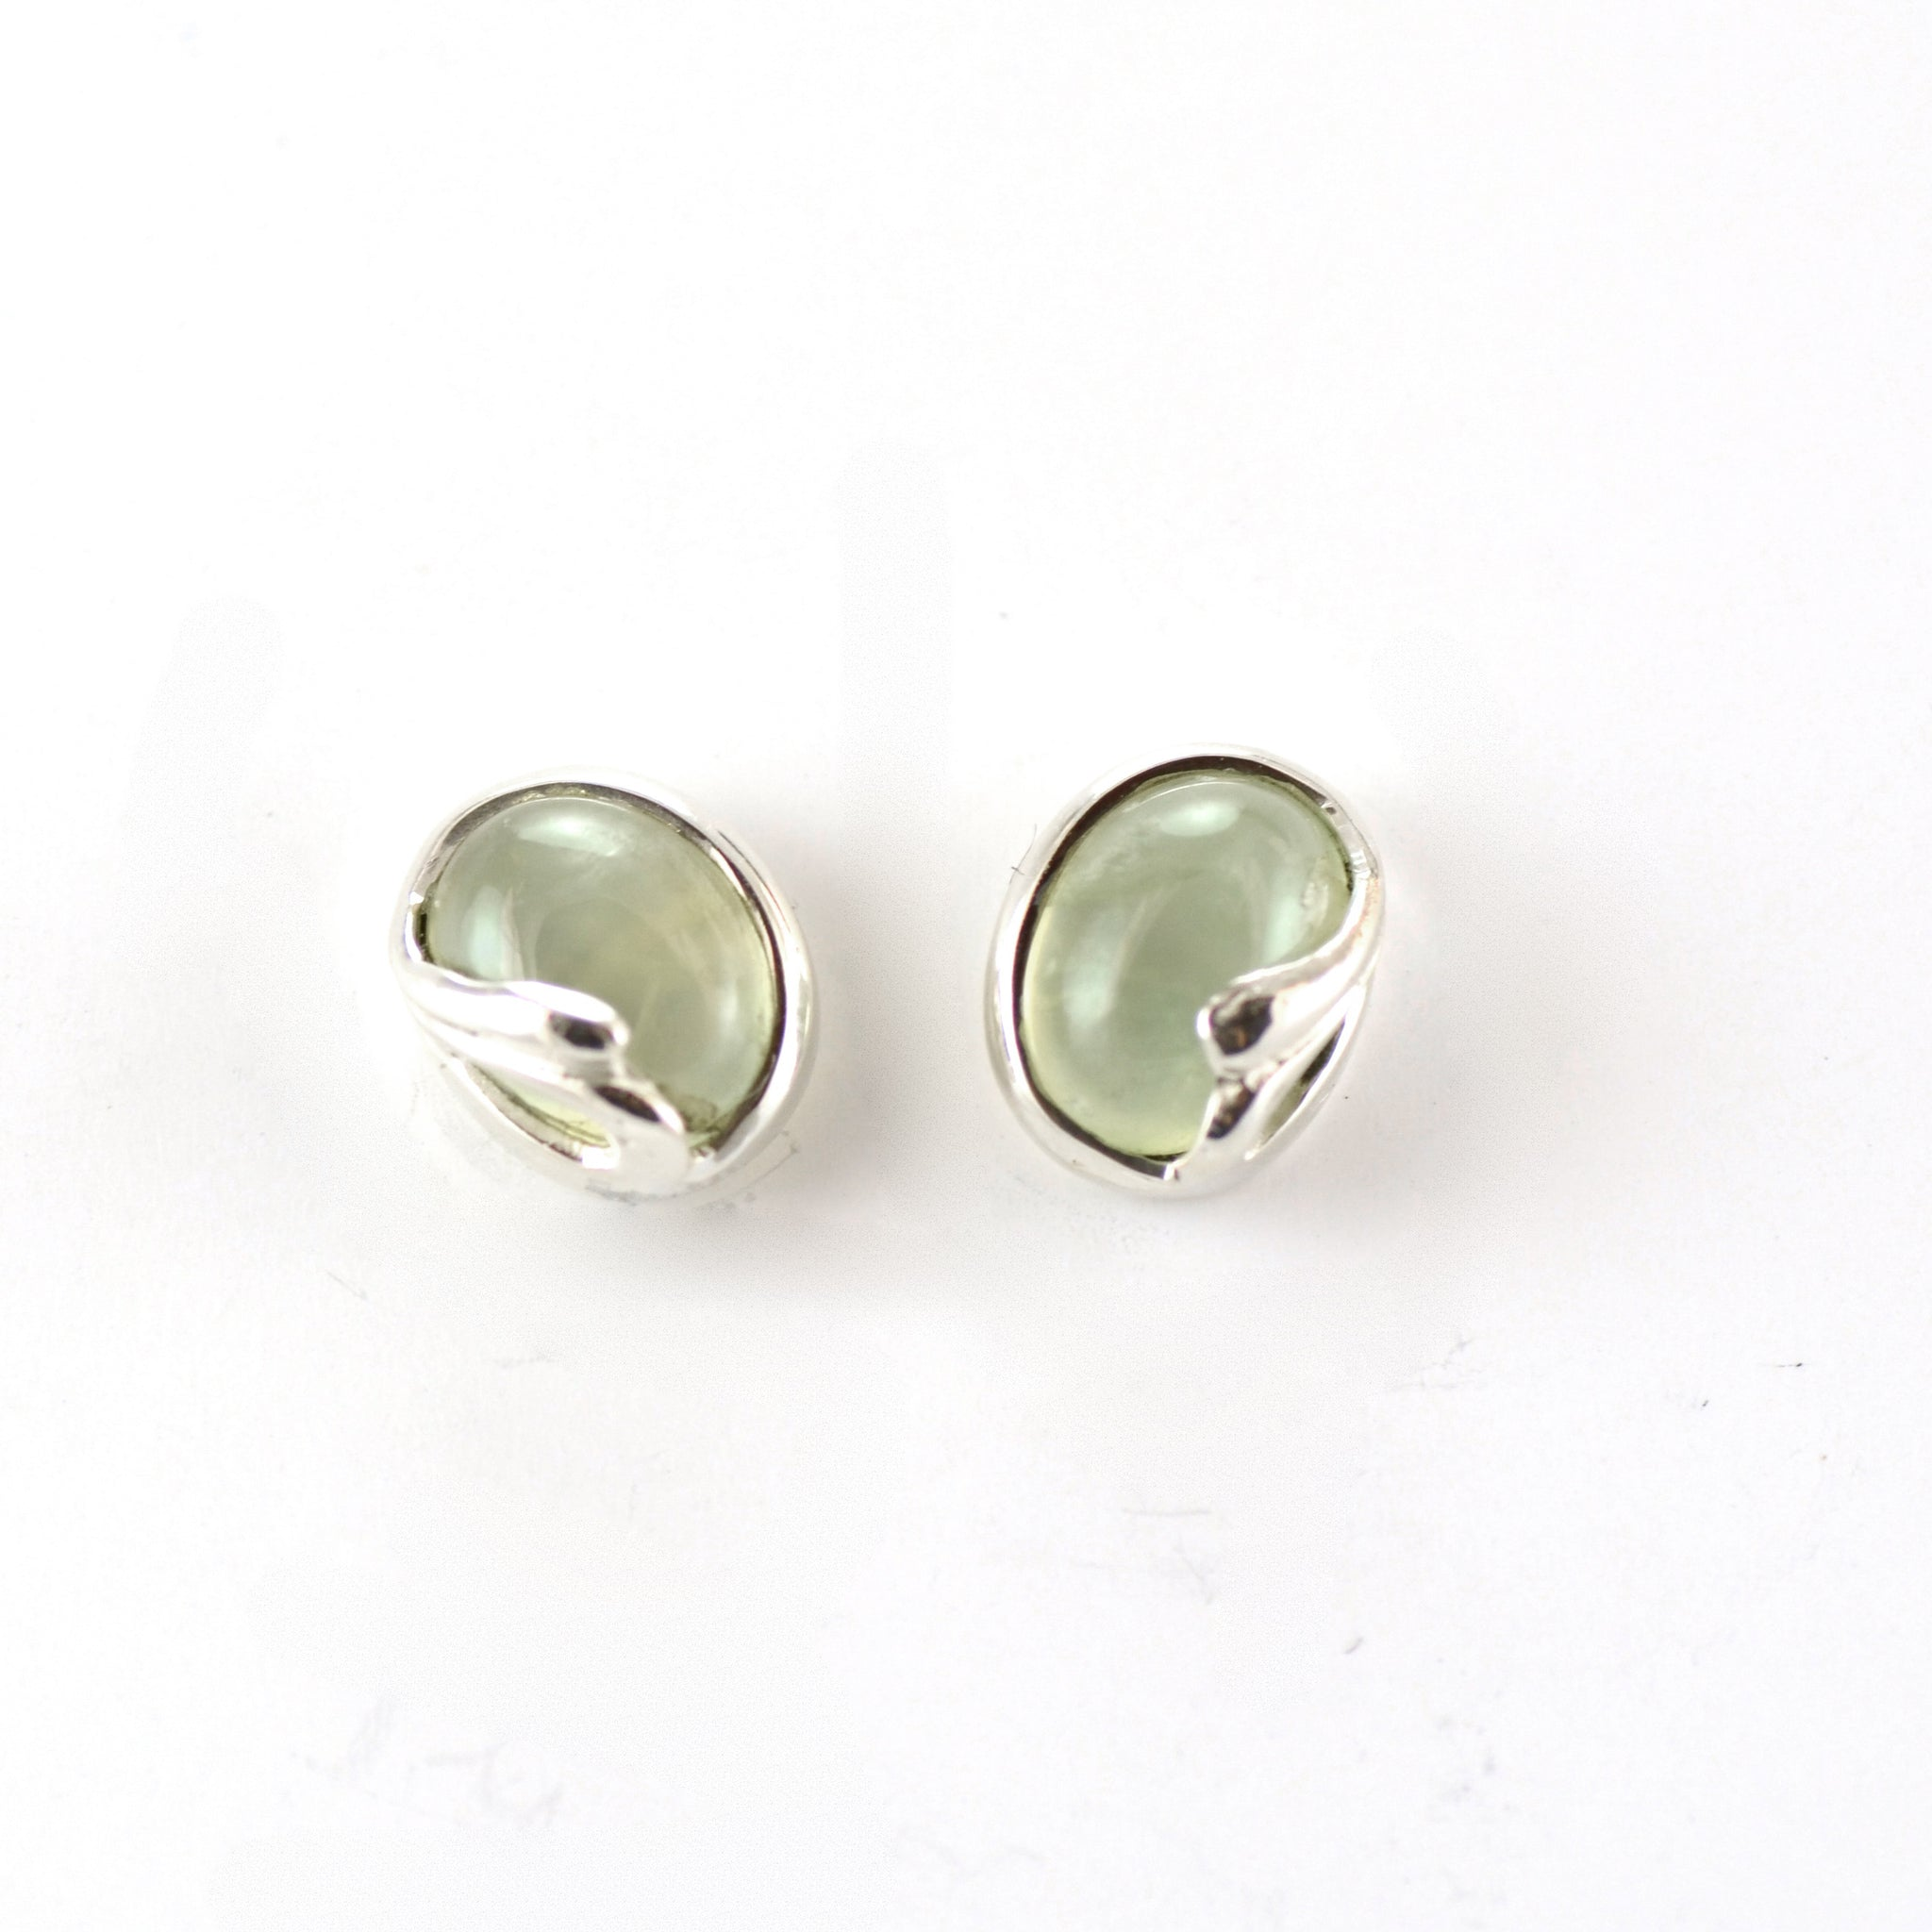 Peridot Stud Earrings With Silver Helmet